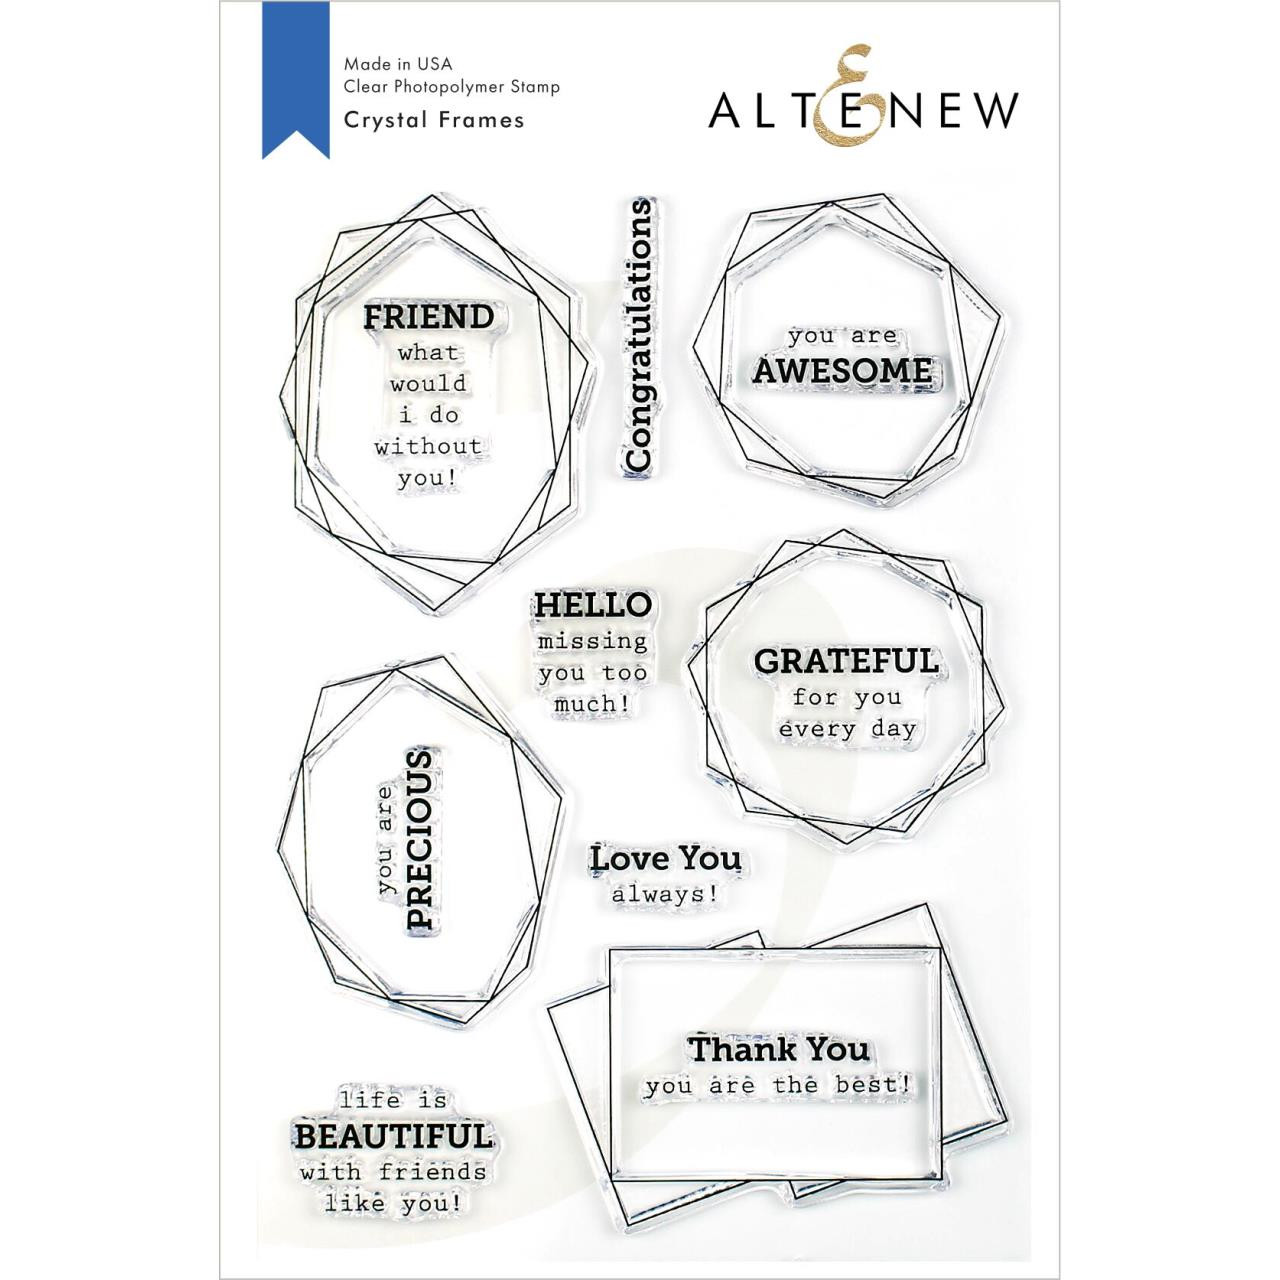 Crystal Frames, Altenew Clear Stamps - 704831302257